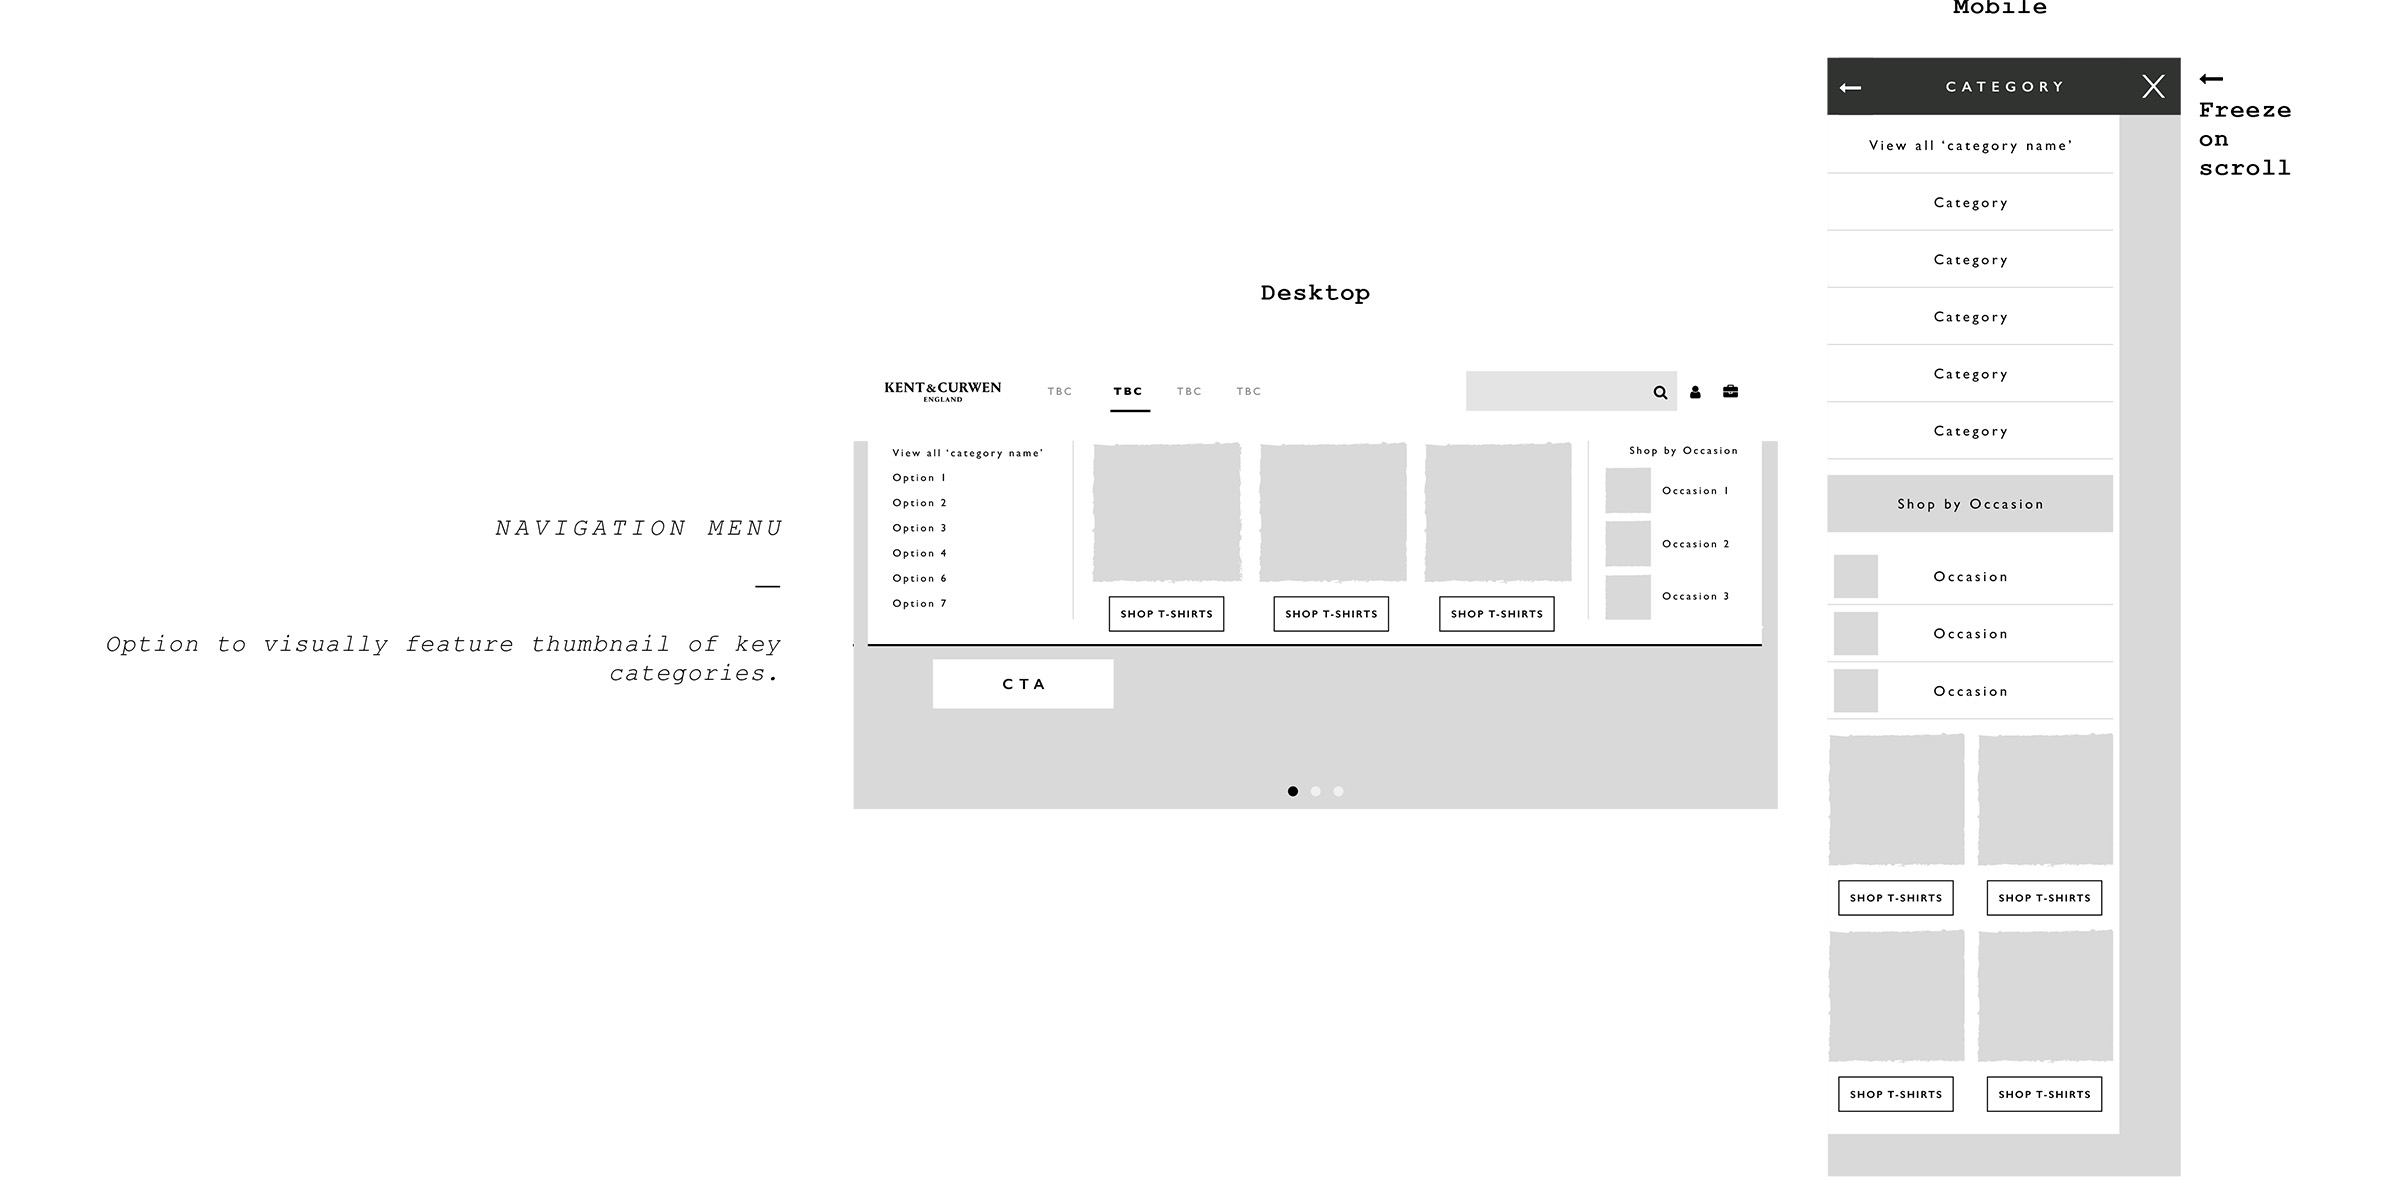 laurengracedesign-freelance-ux-design-consultant-kent-curwen-fashion-menswear-mid-fidelity-wireframes-categories.jpg